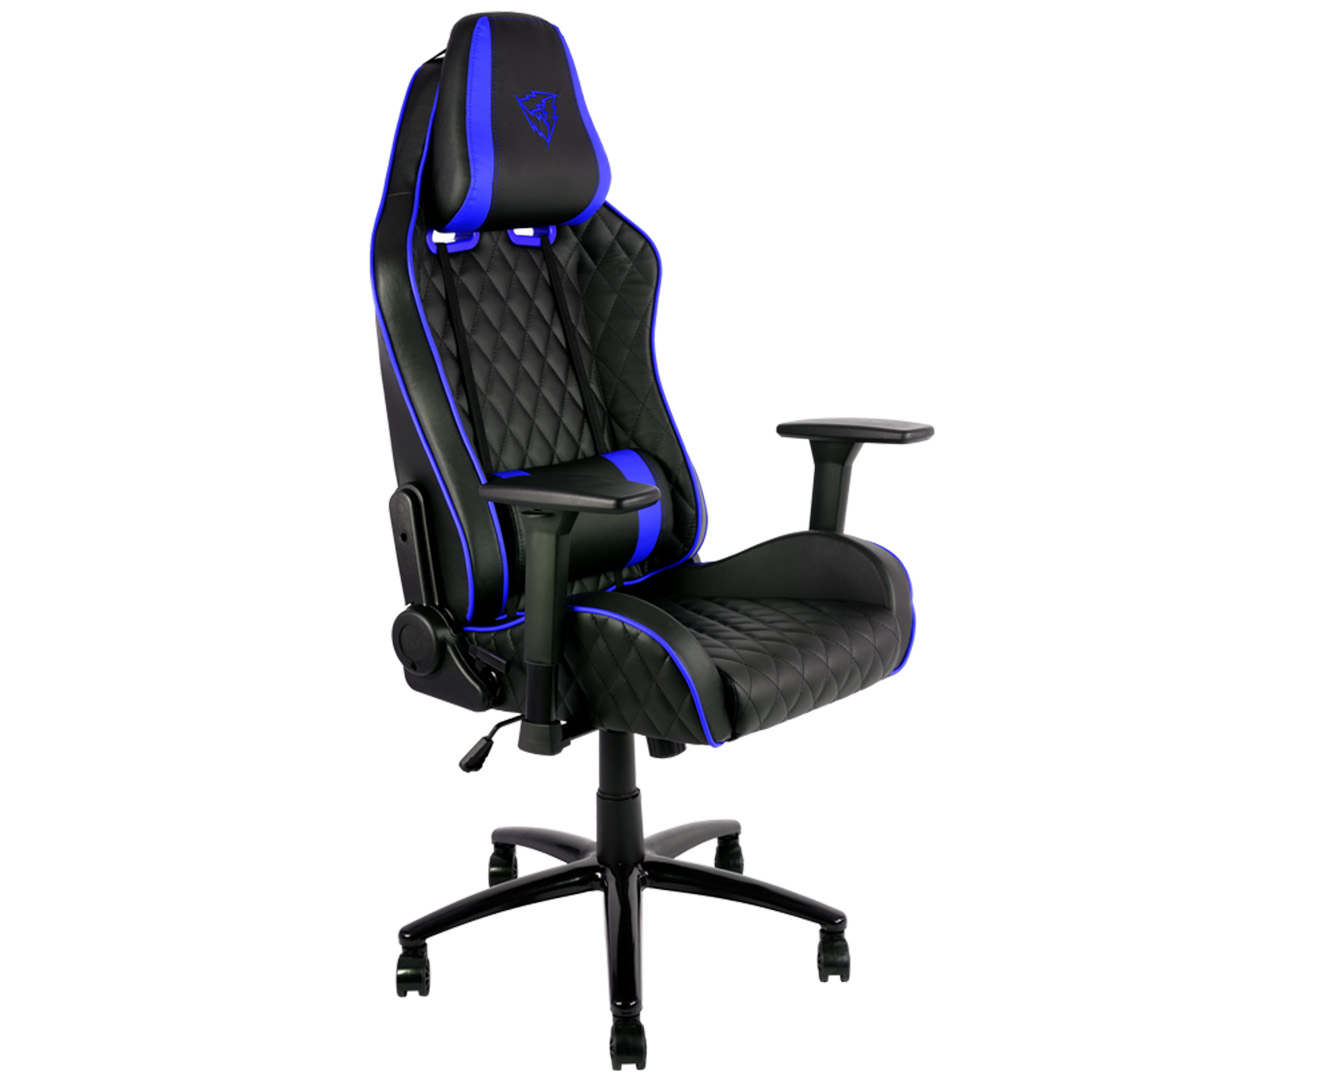 x3 office chair lime green dining chairs thunderx3 tgc31 gaming black blue scoopon shopping